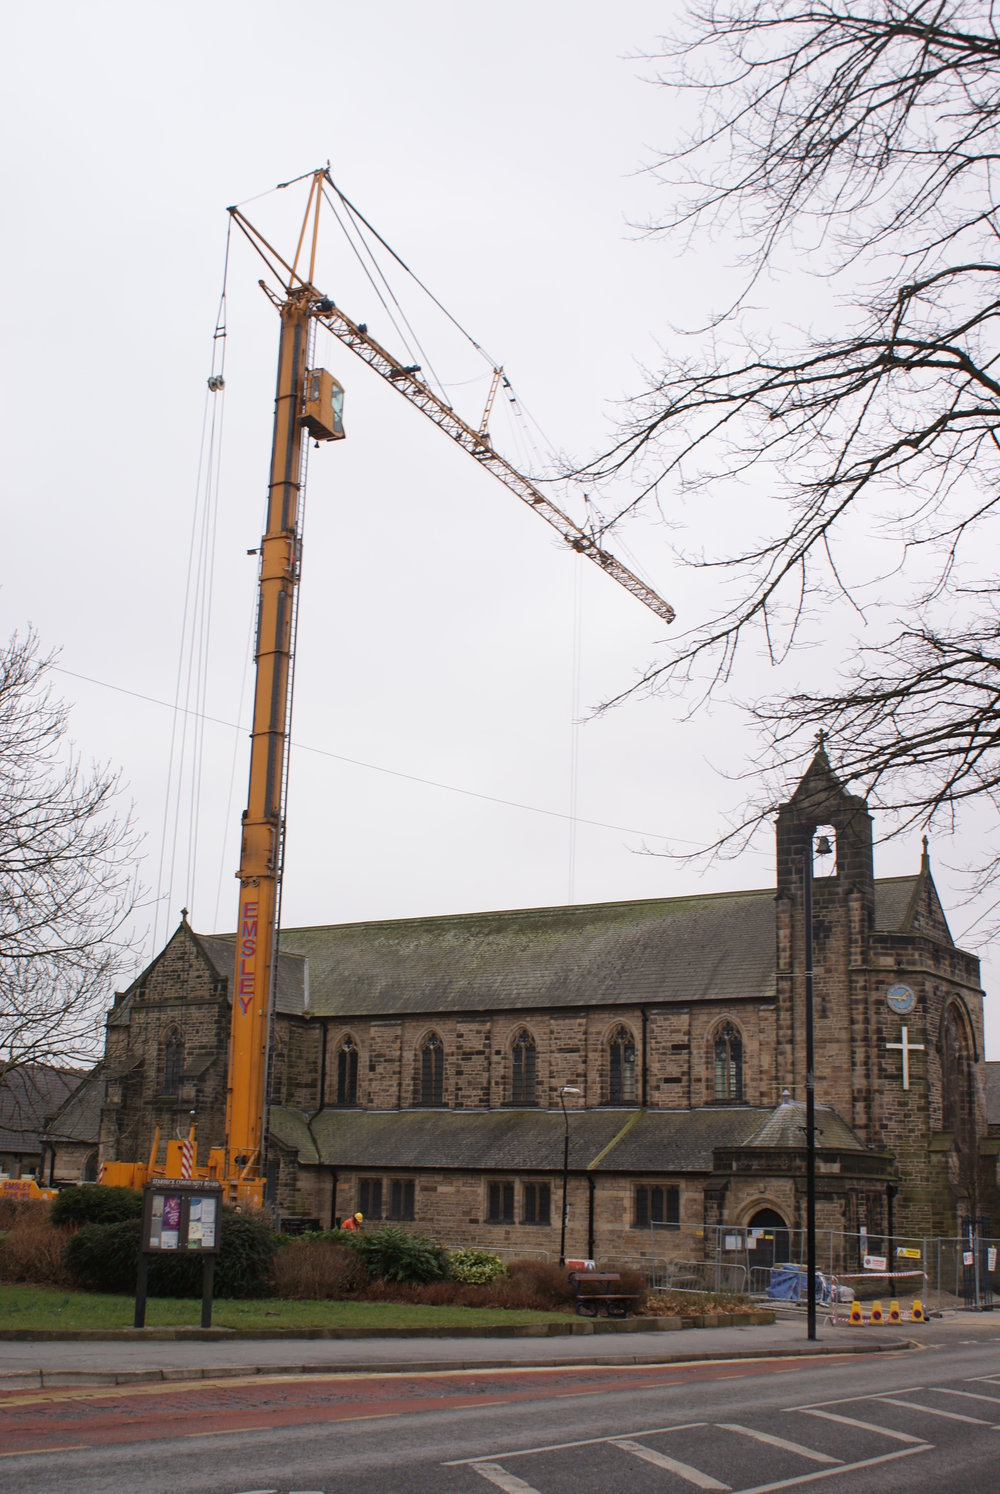 The steelwork had to be craned over the existing church due to the site constraints.